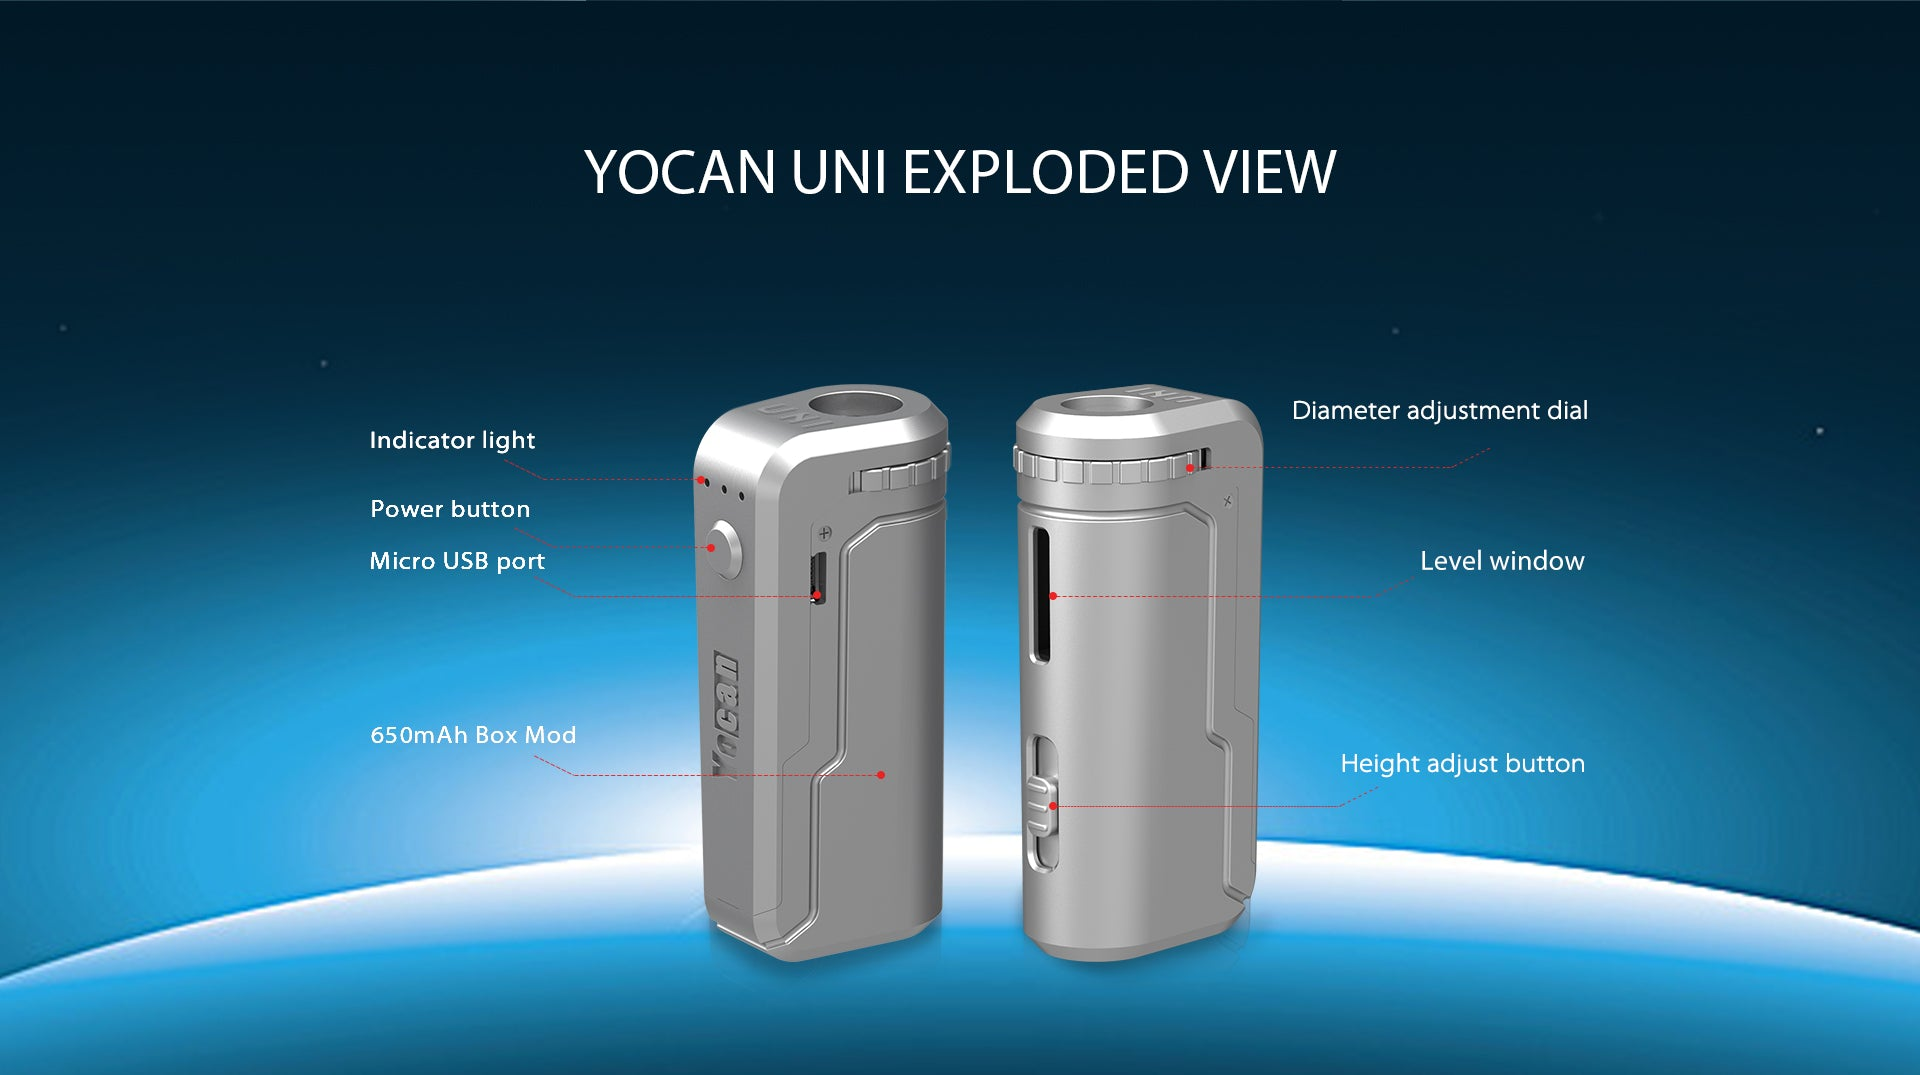 YOCAN UNI UNIVERSAL AND PORTABLE CBD STYLE BOX MOD